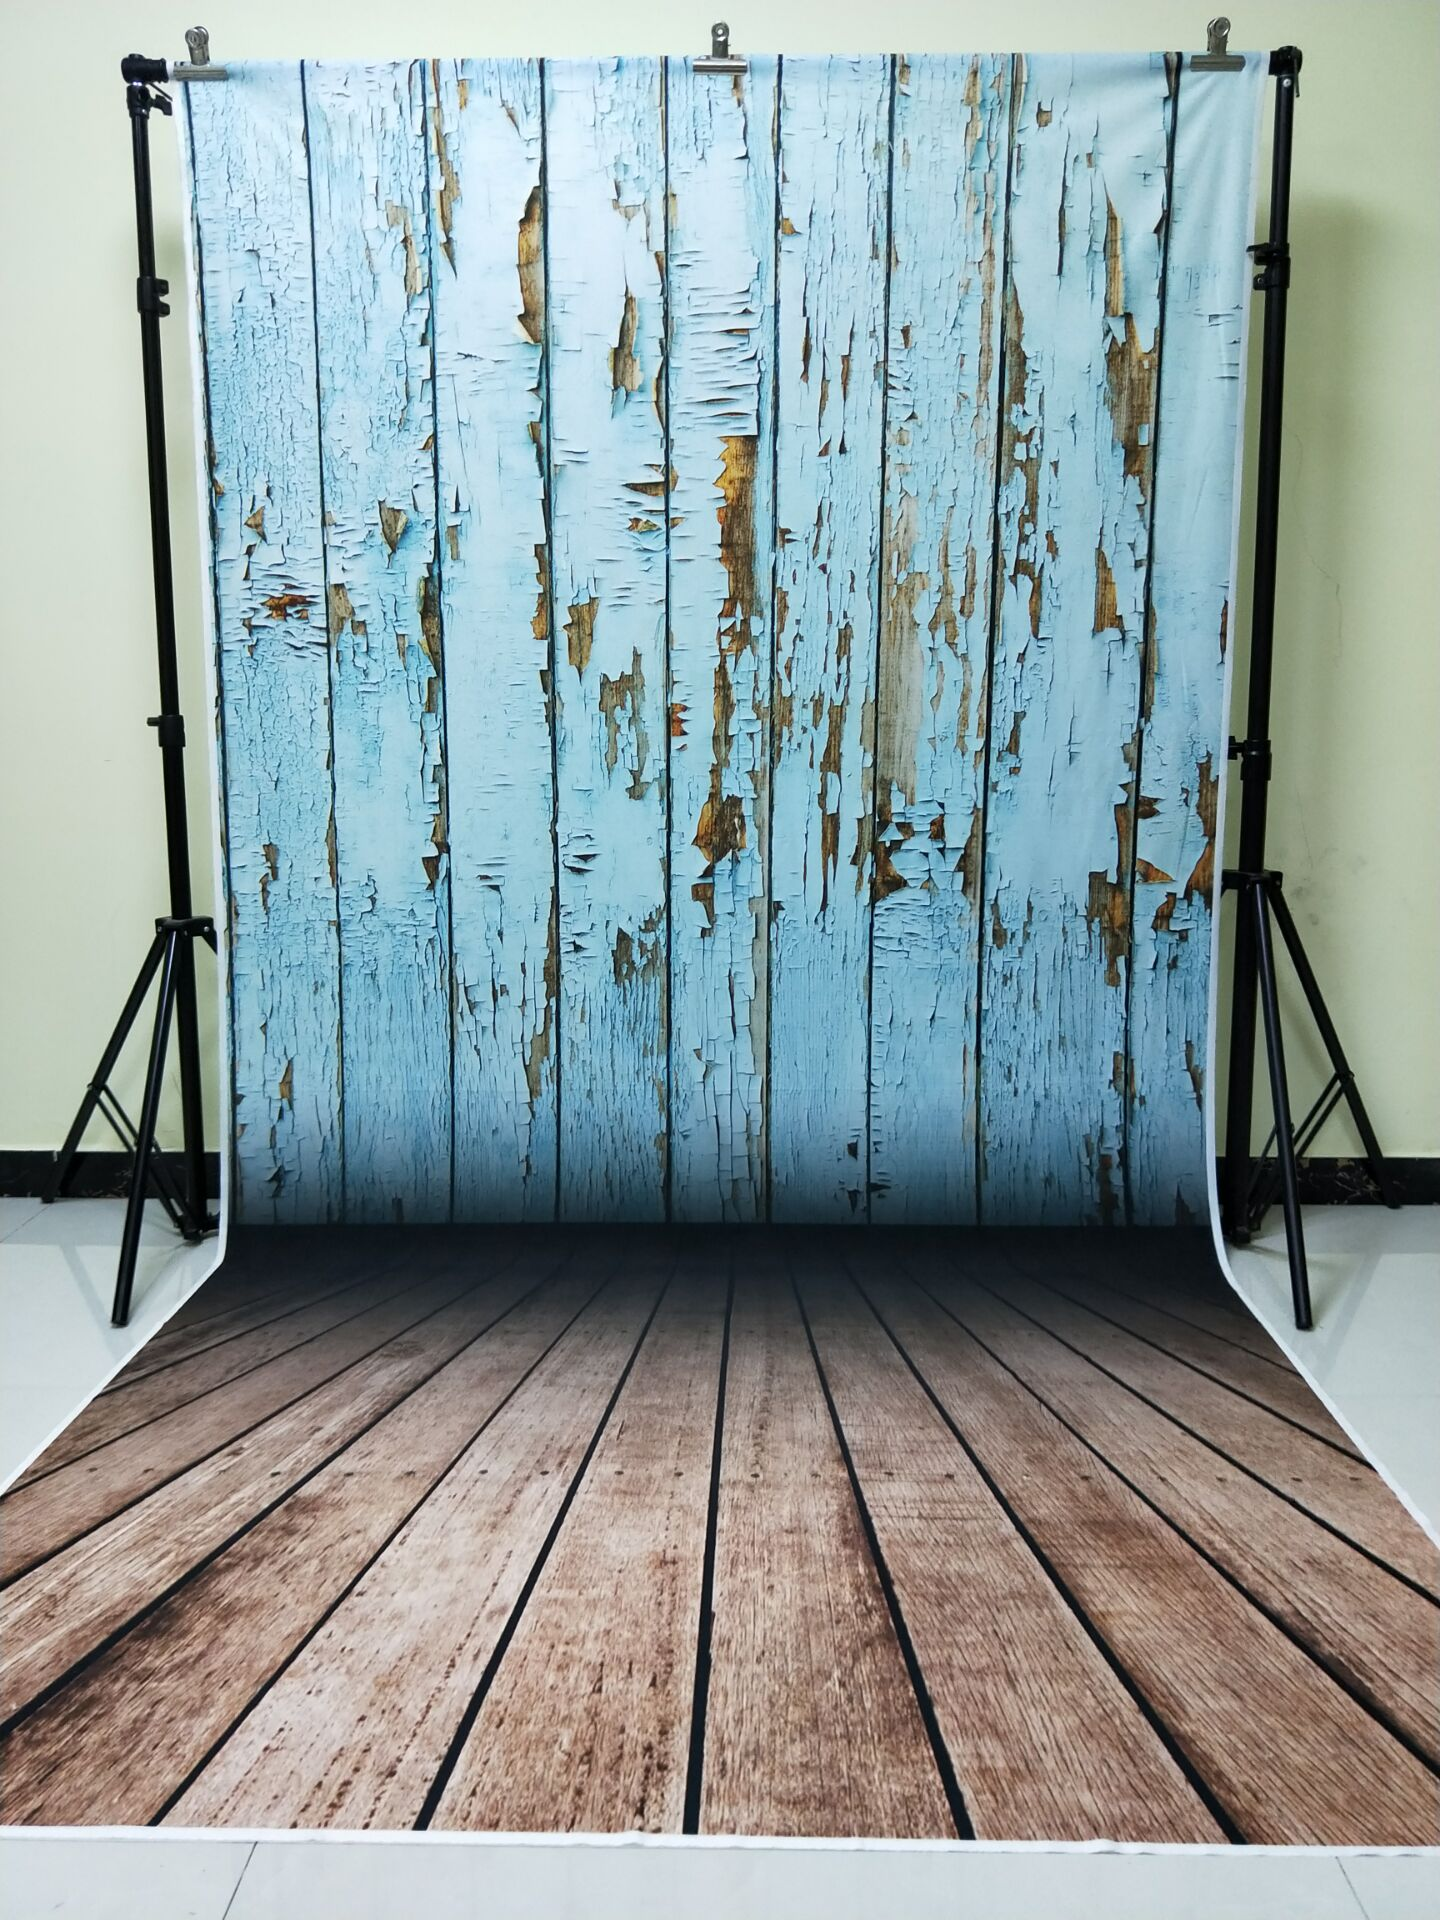 HUAYI 5x10ft Cotton Polyester Blue Wood Floor Photography Backdrop Washable Photo Studios Baby Props Background KP-372